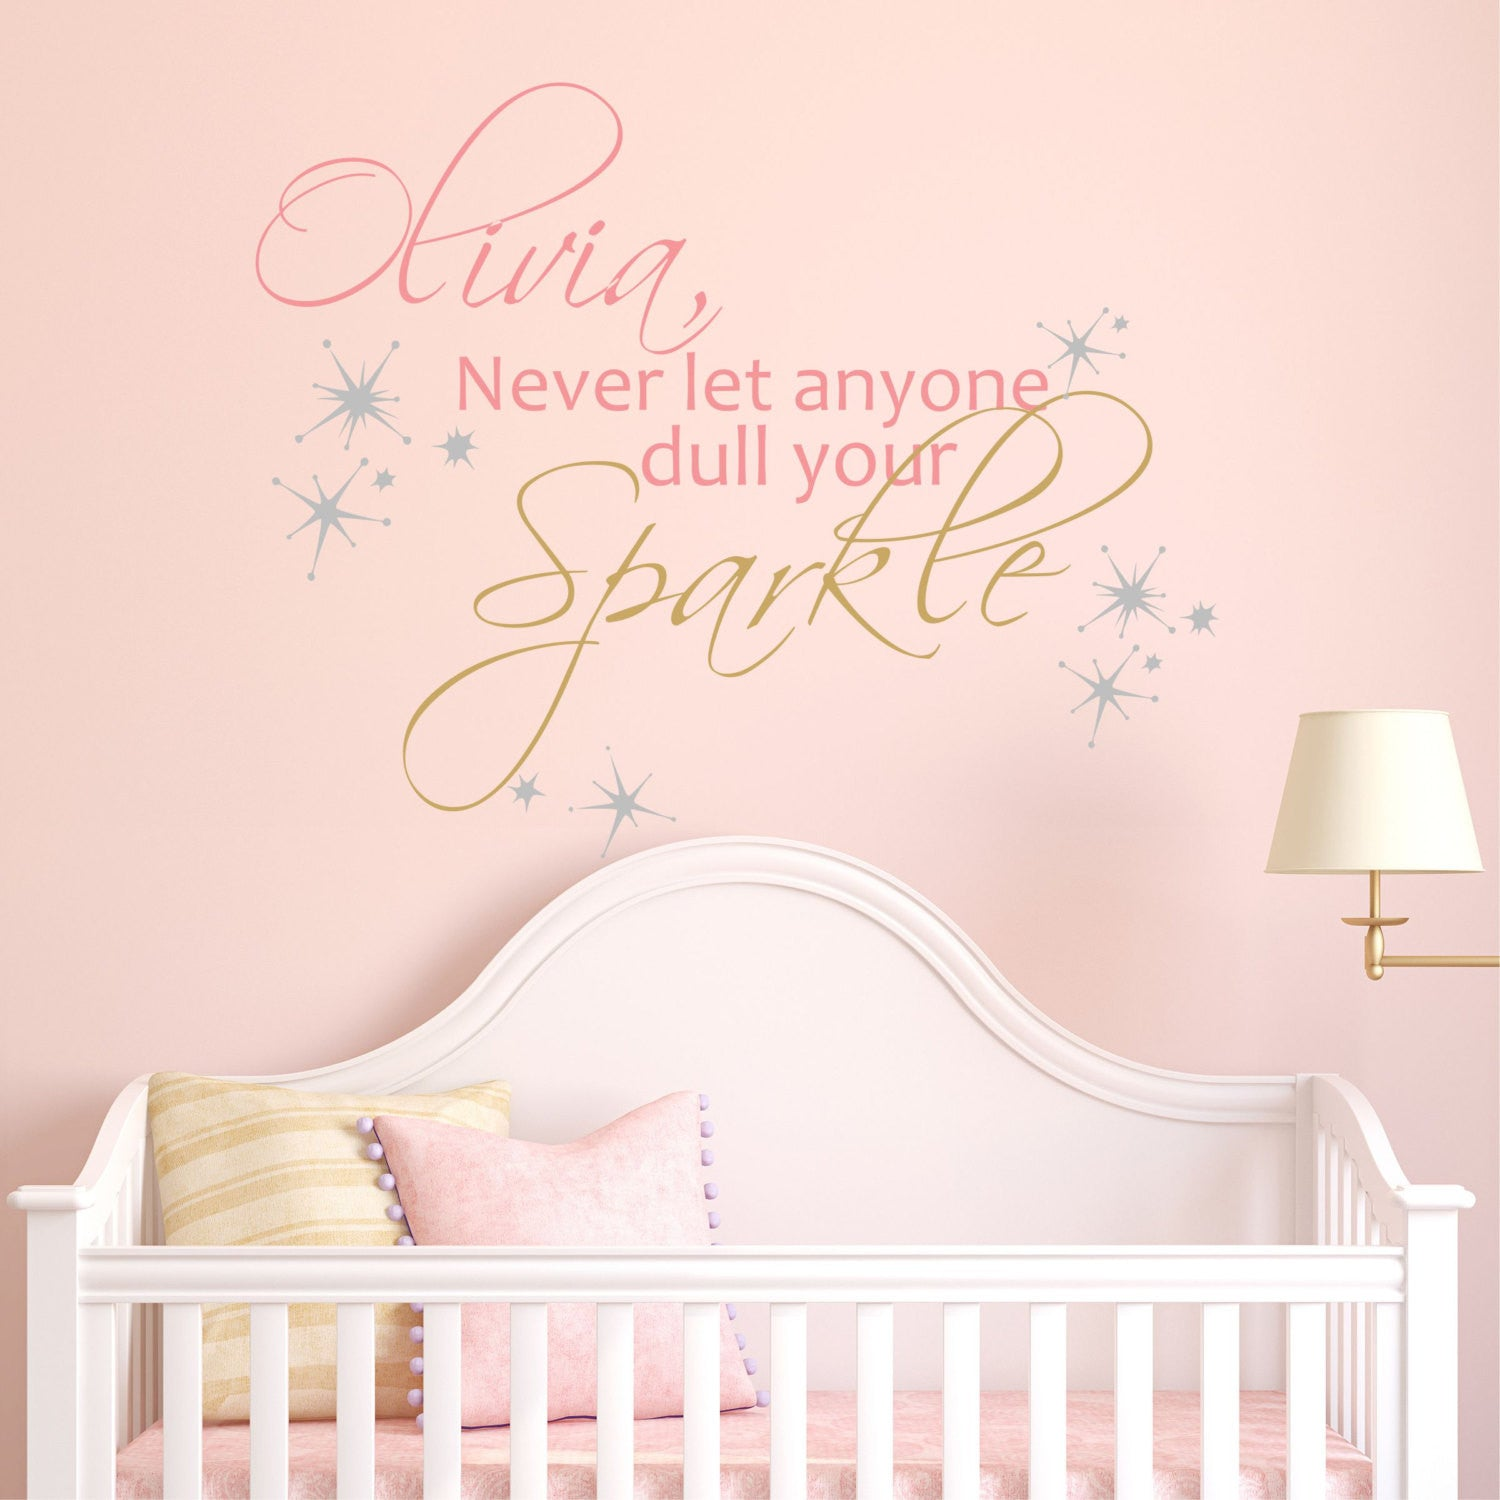 Never let anyone dull your sparkle by decor designs decals sparkle never let anyone dull your sparkle by decor designs decals sparkle vinyl wall decal amipublicfo Images